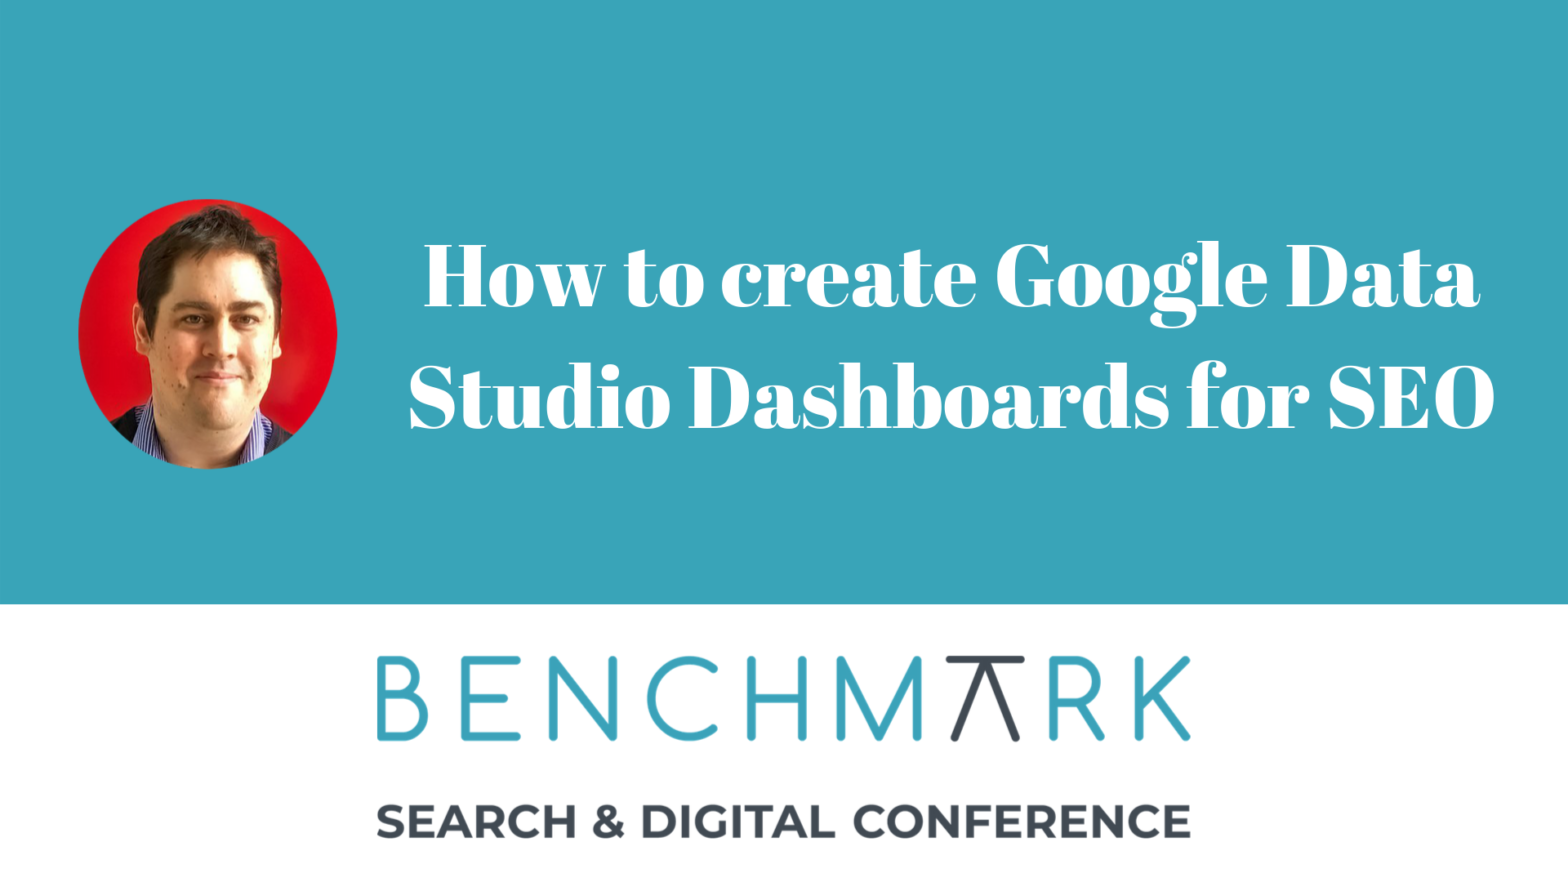 How to create Google Data Studio Dashboards for SEO